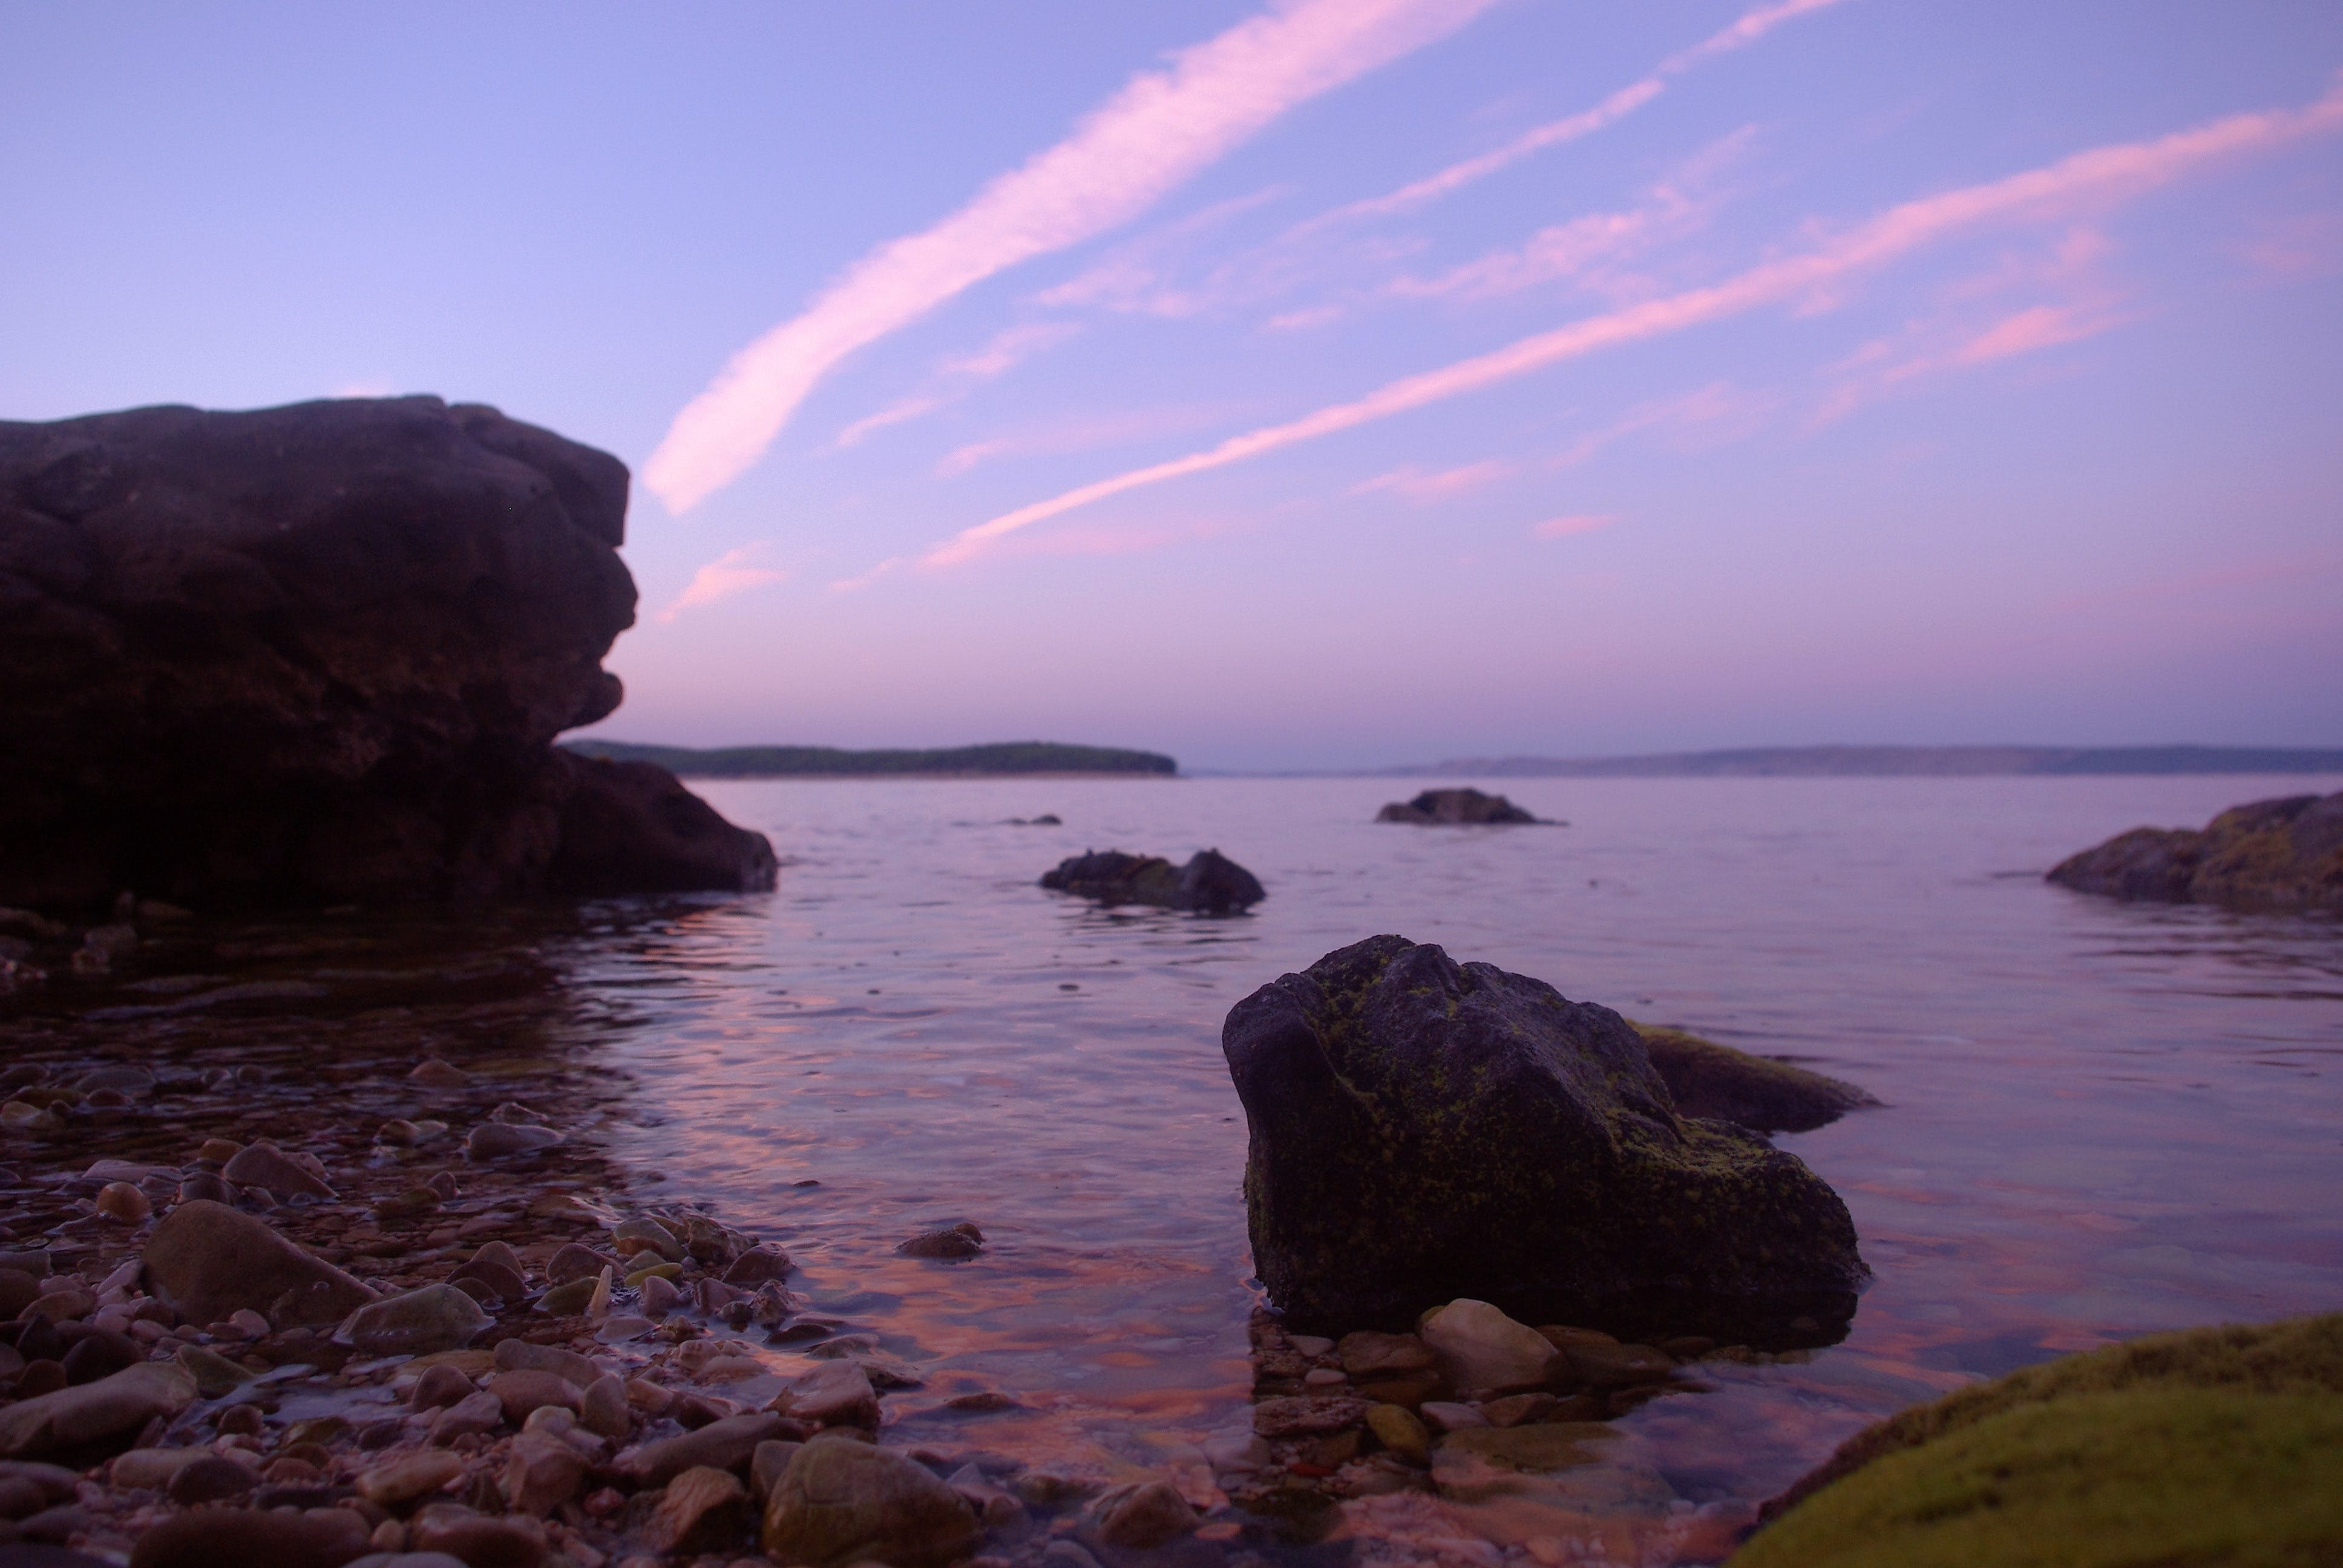 Rock Formation on Body of Water Under Altostratus Clouds